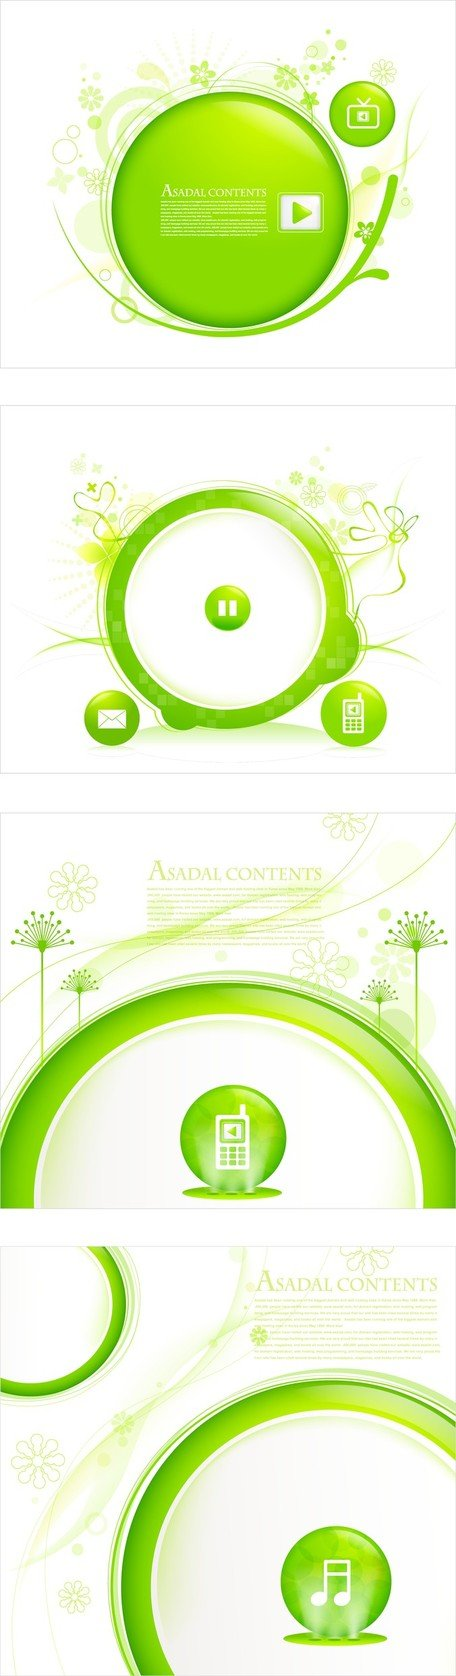 Simple Graphics Vector 21